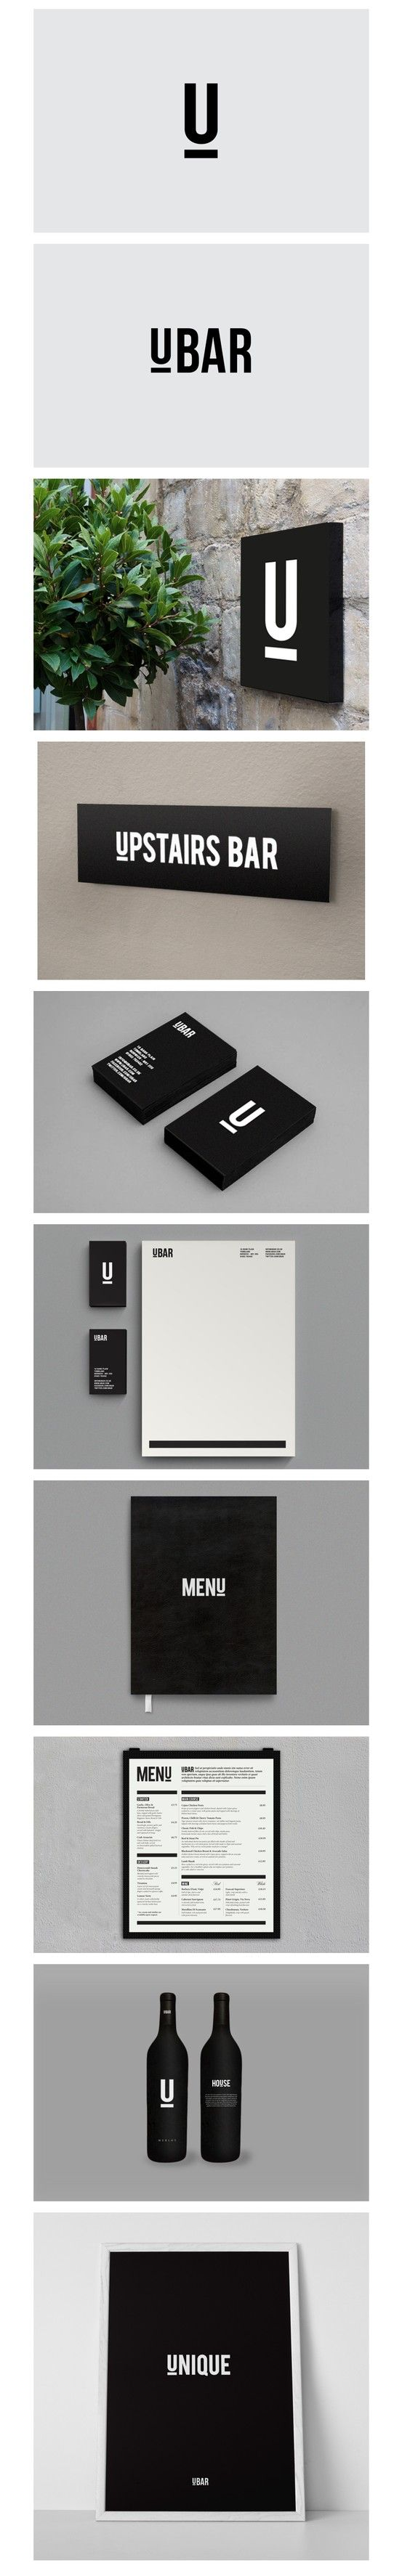 UBAR, branding, typography, monochrome, icon, U, brand, black and white, upstairs bar, stationary, menu, wine, modern, minimal